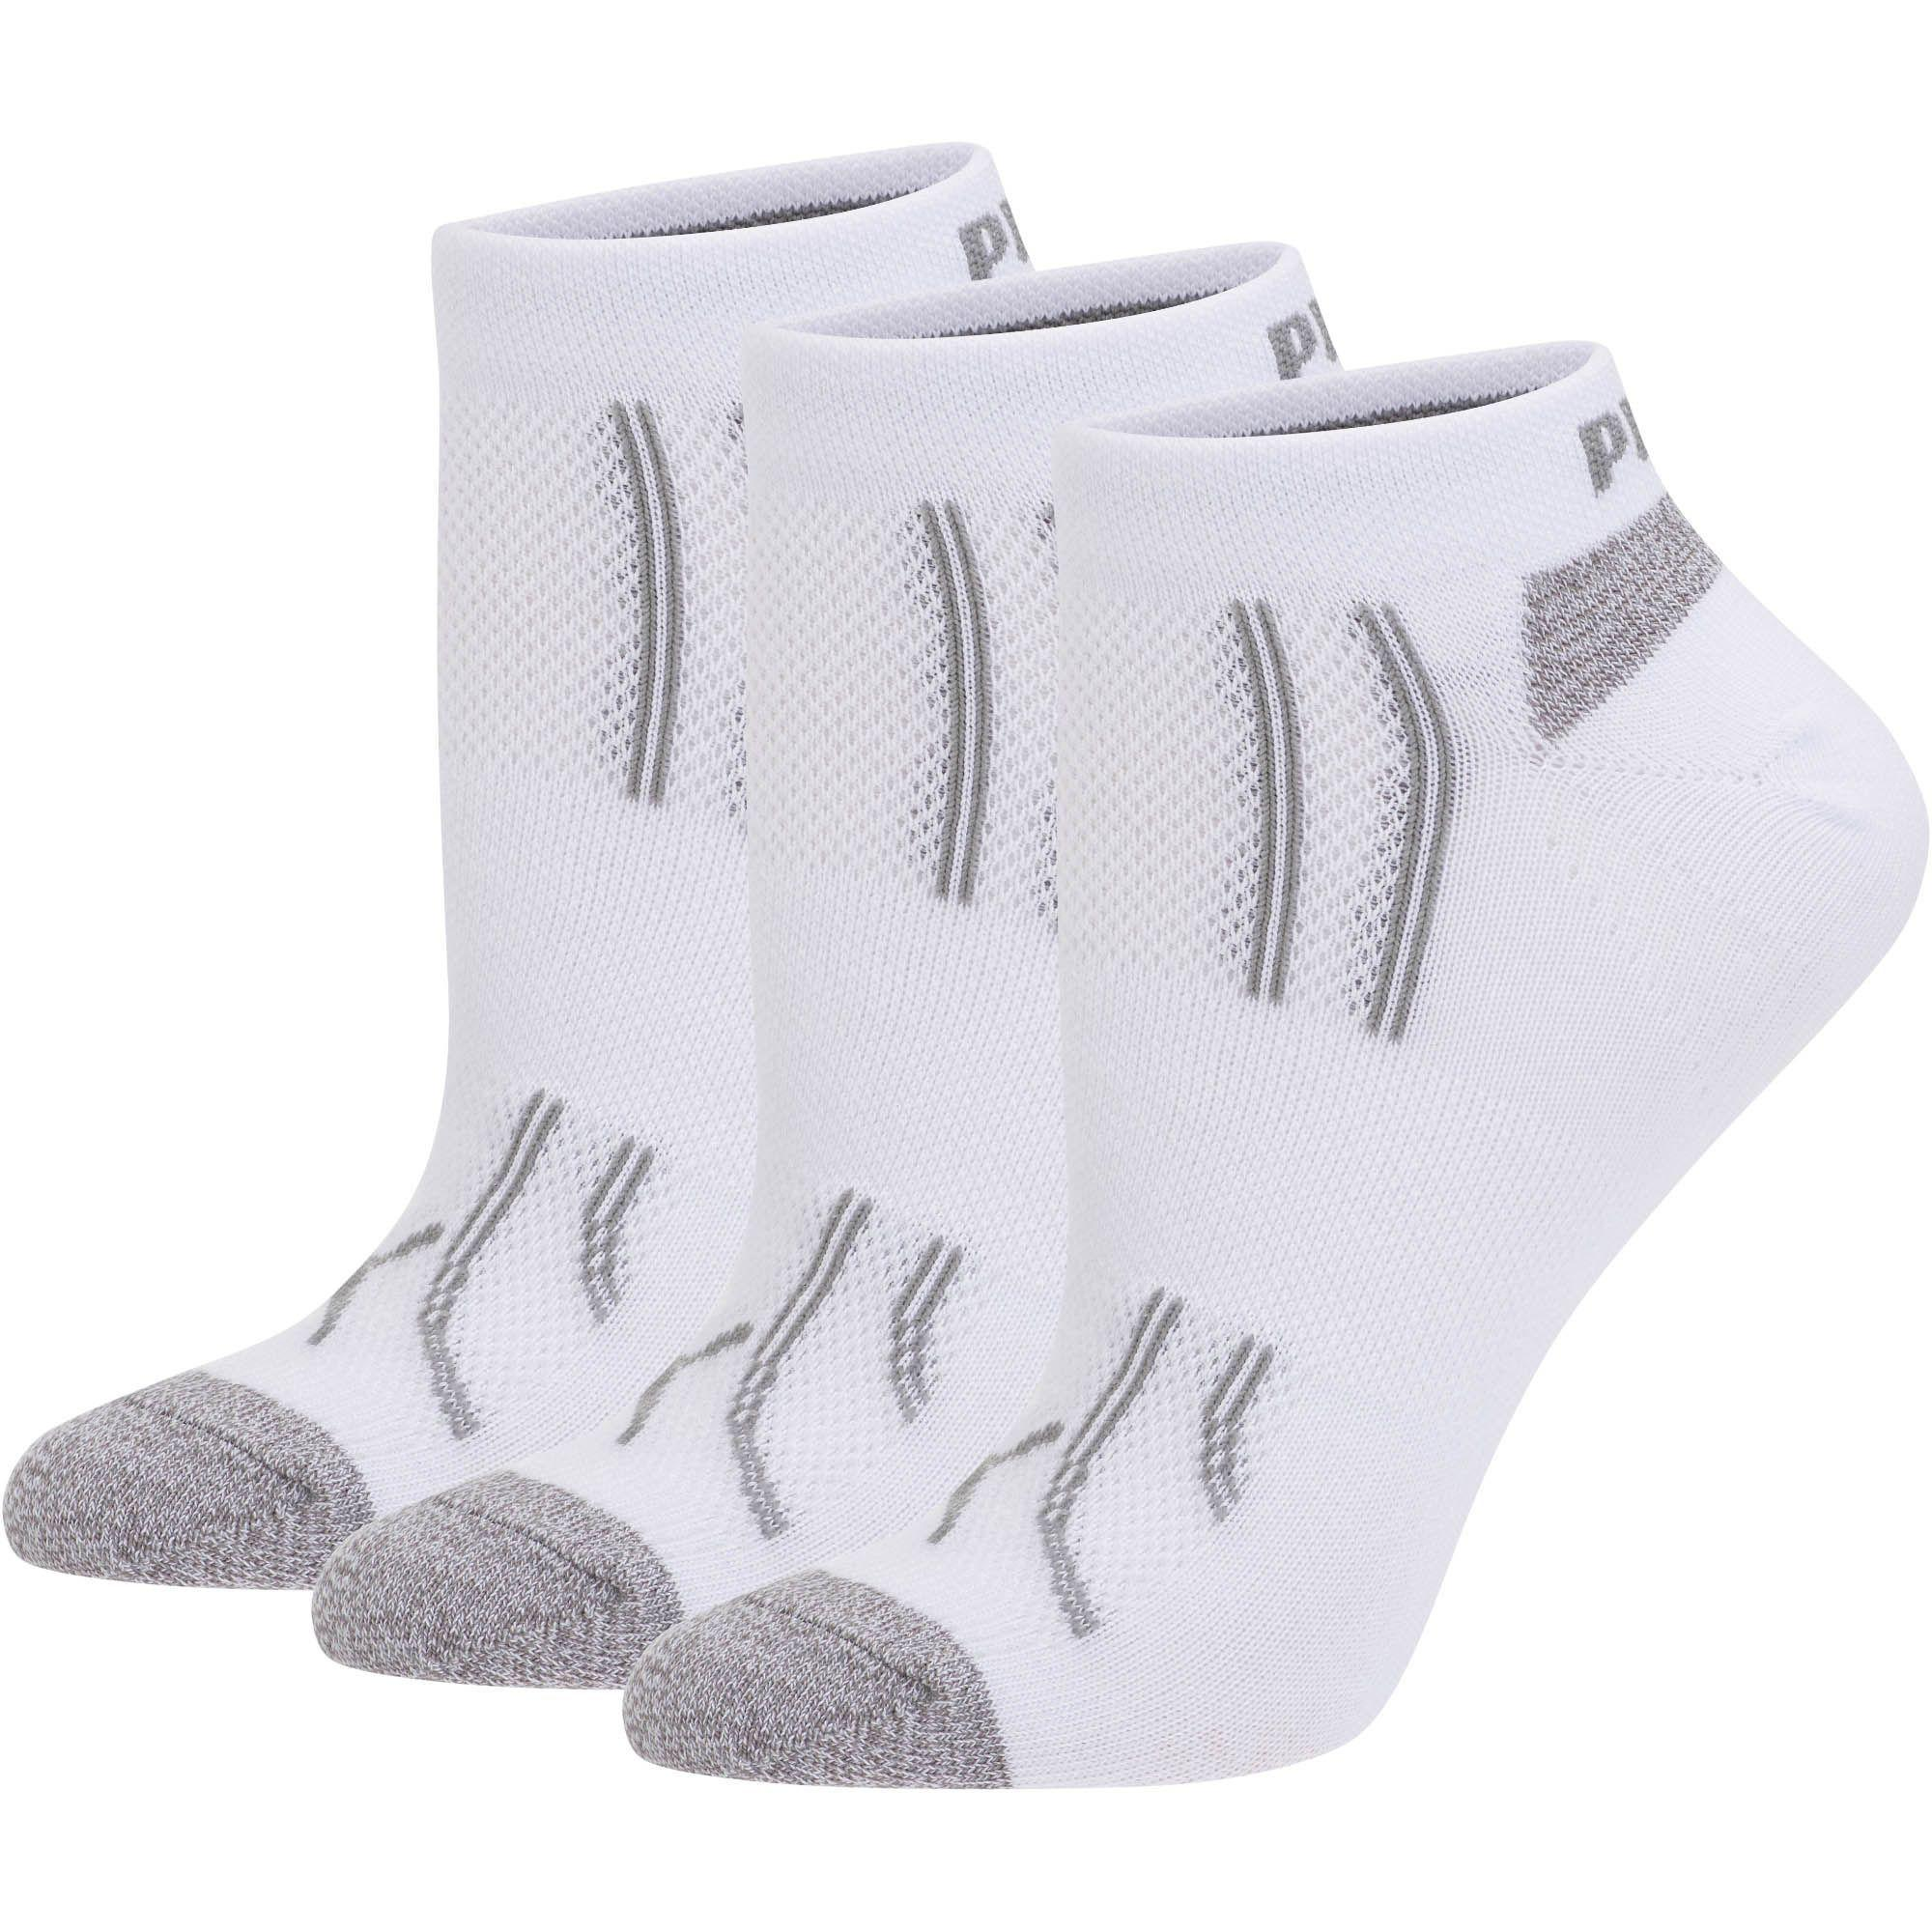 PUMA. Gray Modal Women's Low Cut Socks (3 Pack)